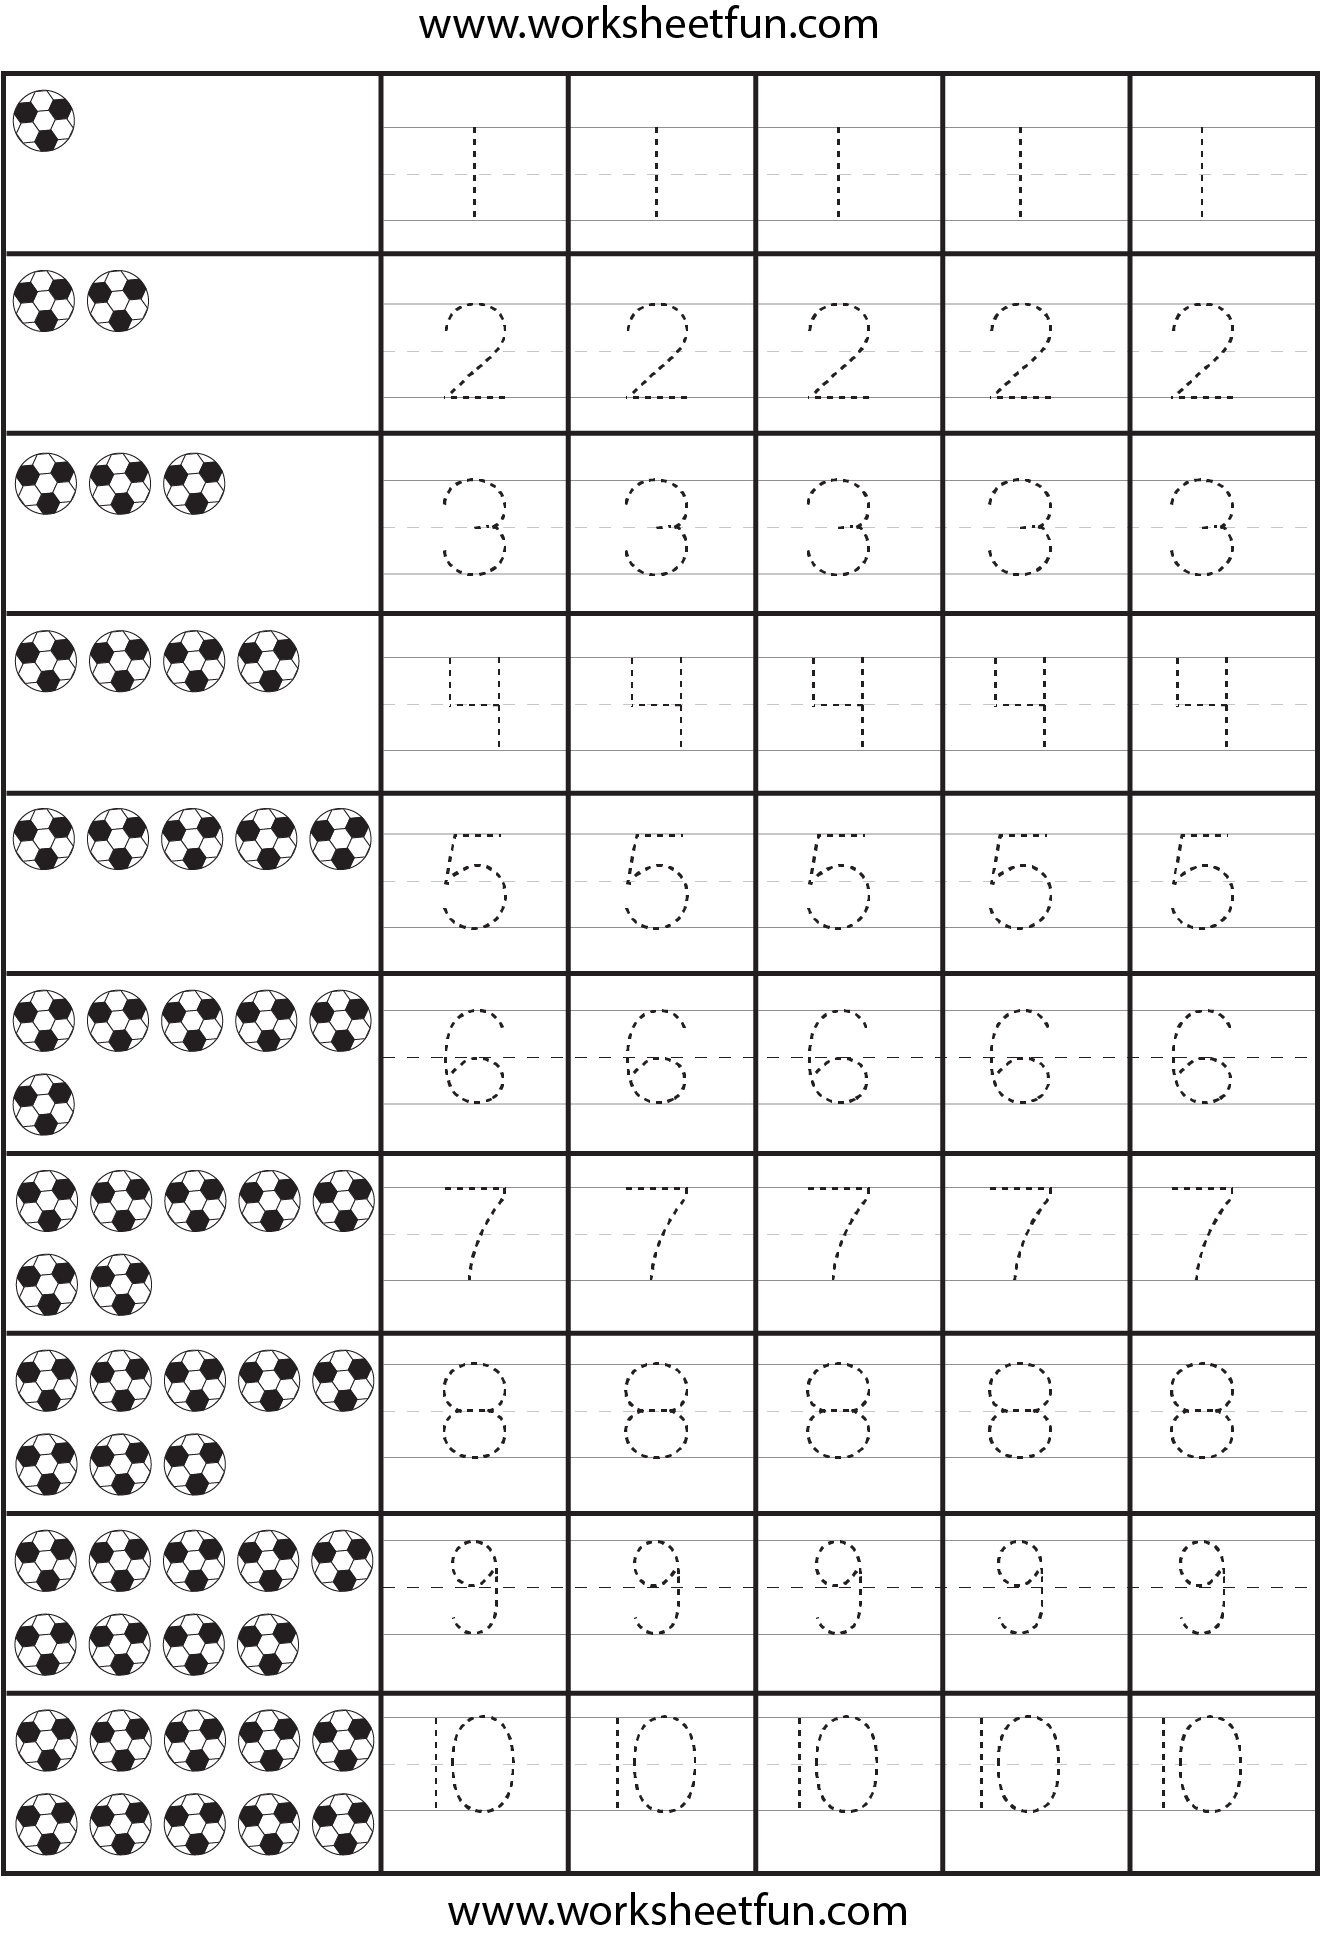 Worksheet 19891406 Numbers 110 Worksheets Kindergarten – Numbers 1-10 Worksheets Kindergarten